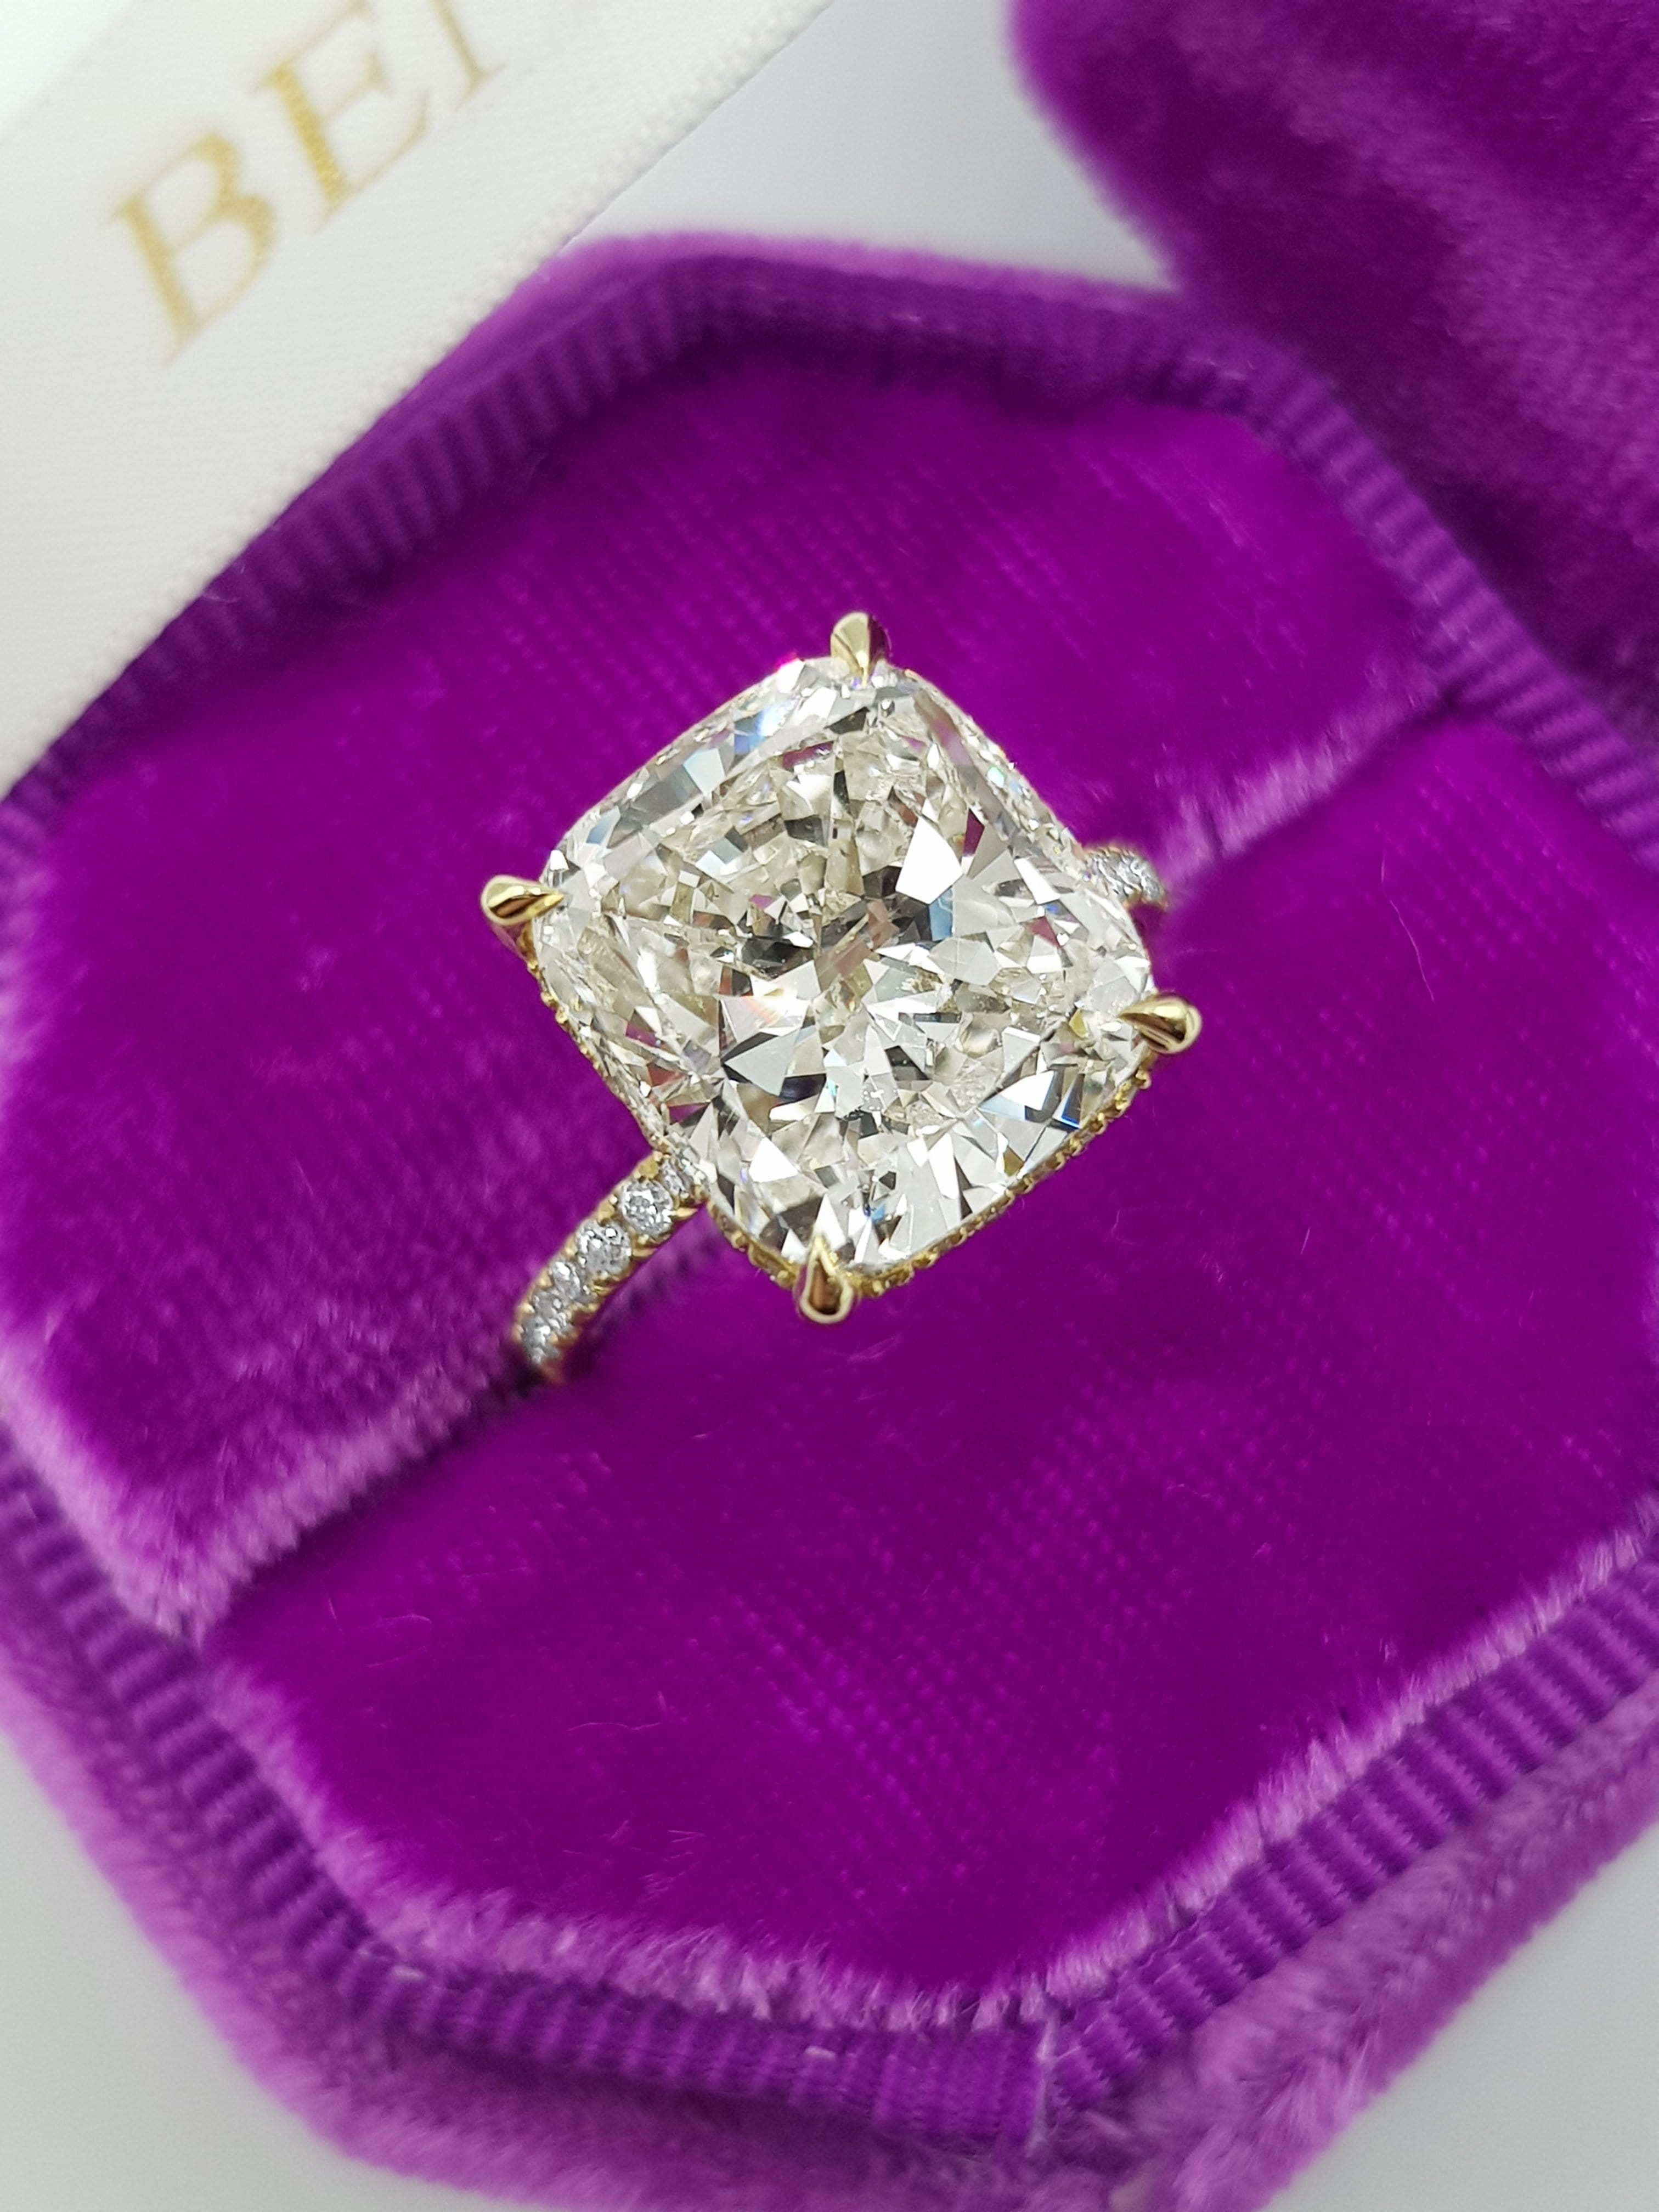 6.20 Carats Cushion Cut Micropaved Side Stones Hidden Halo Diamond Engagement Ring